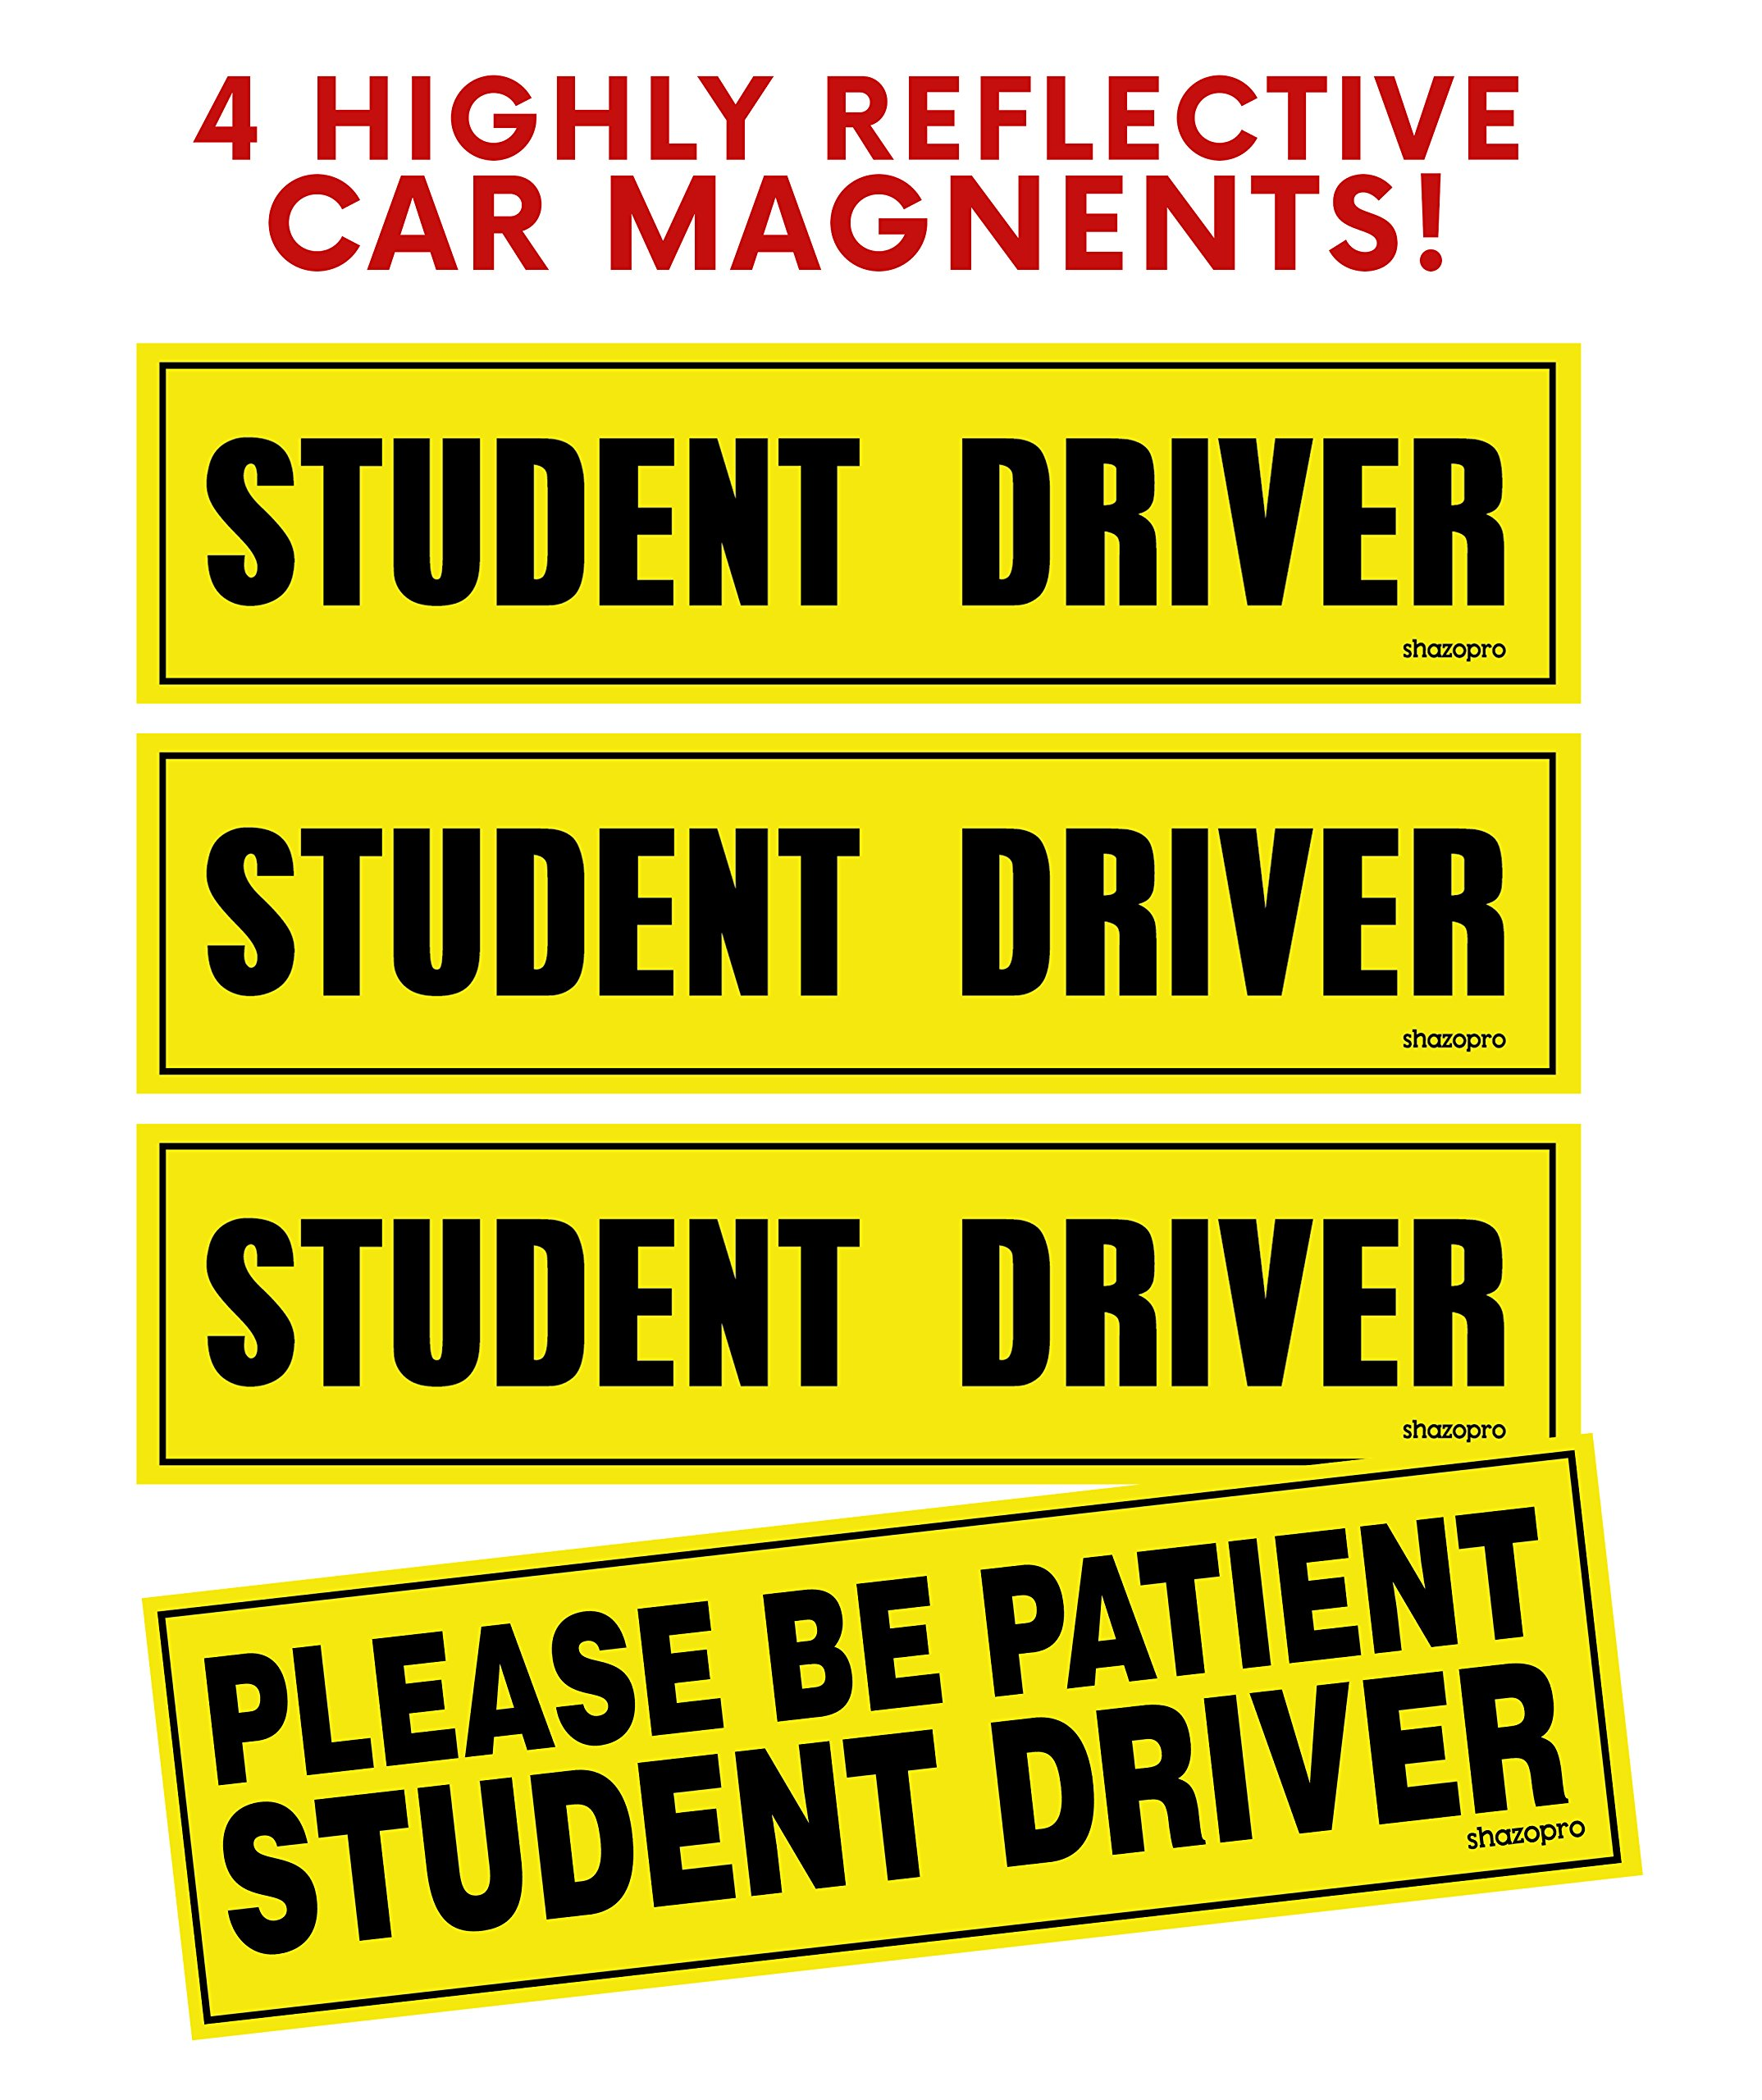 """Set of 4 Student Driver Magnet - """"Student Driver"""" 3 + 1 """"Please Be Patient Student Driver"""" Safety Sign Vehicle Bumper Magnet - Reflective Vehicle Car Sign Sticker Bumper for New Drivers"""